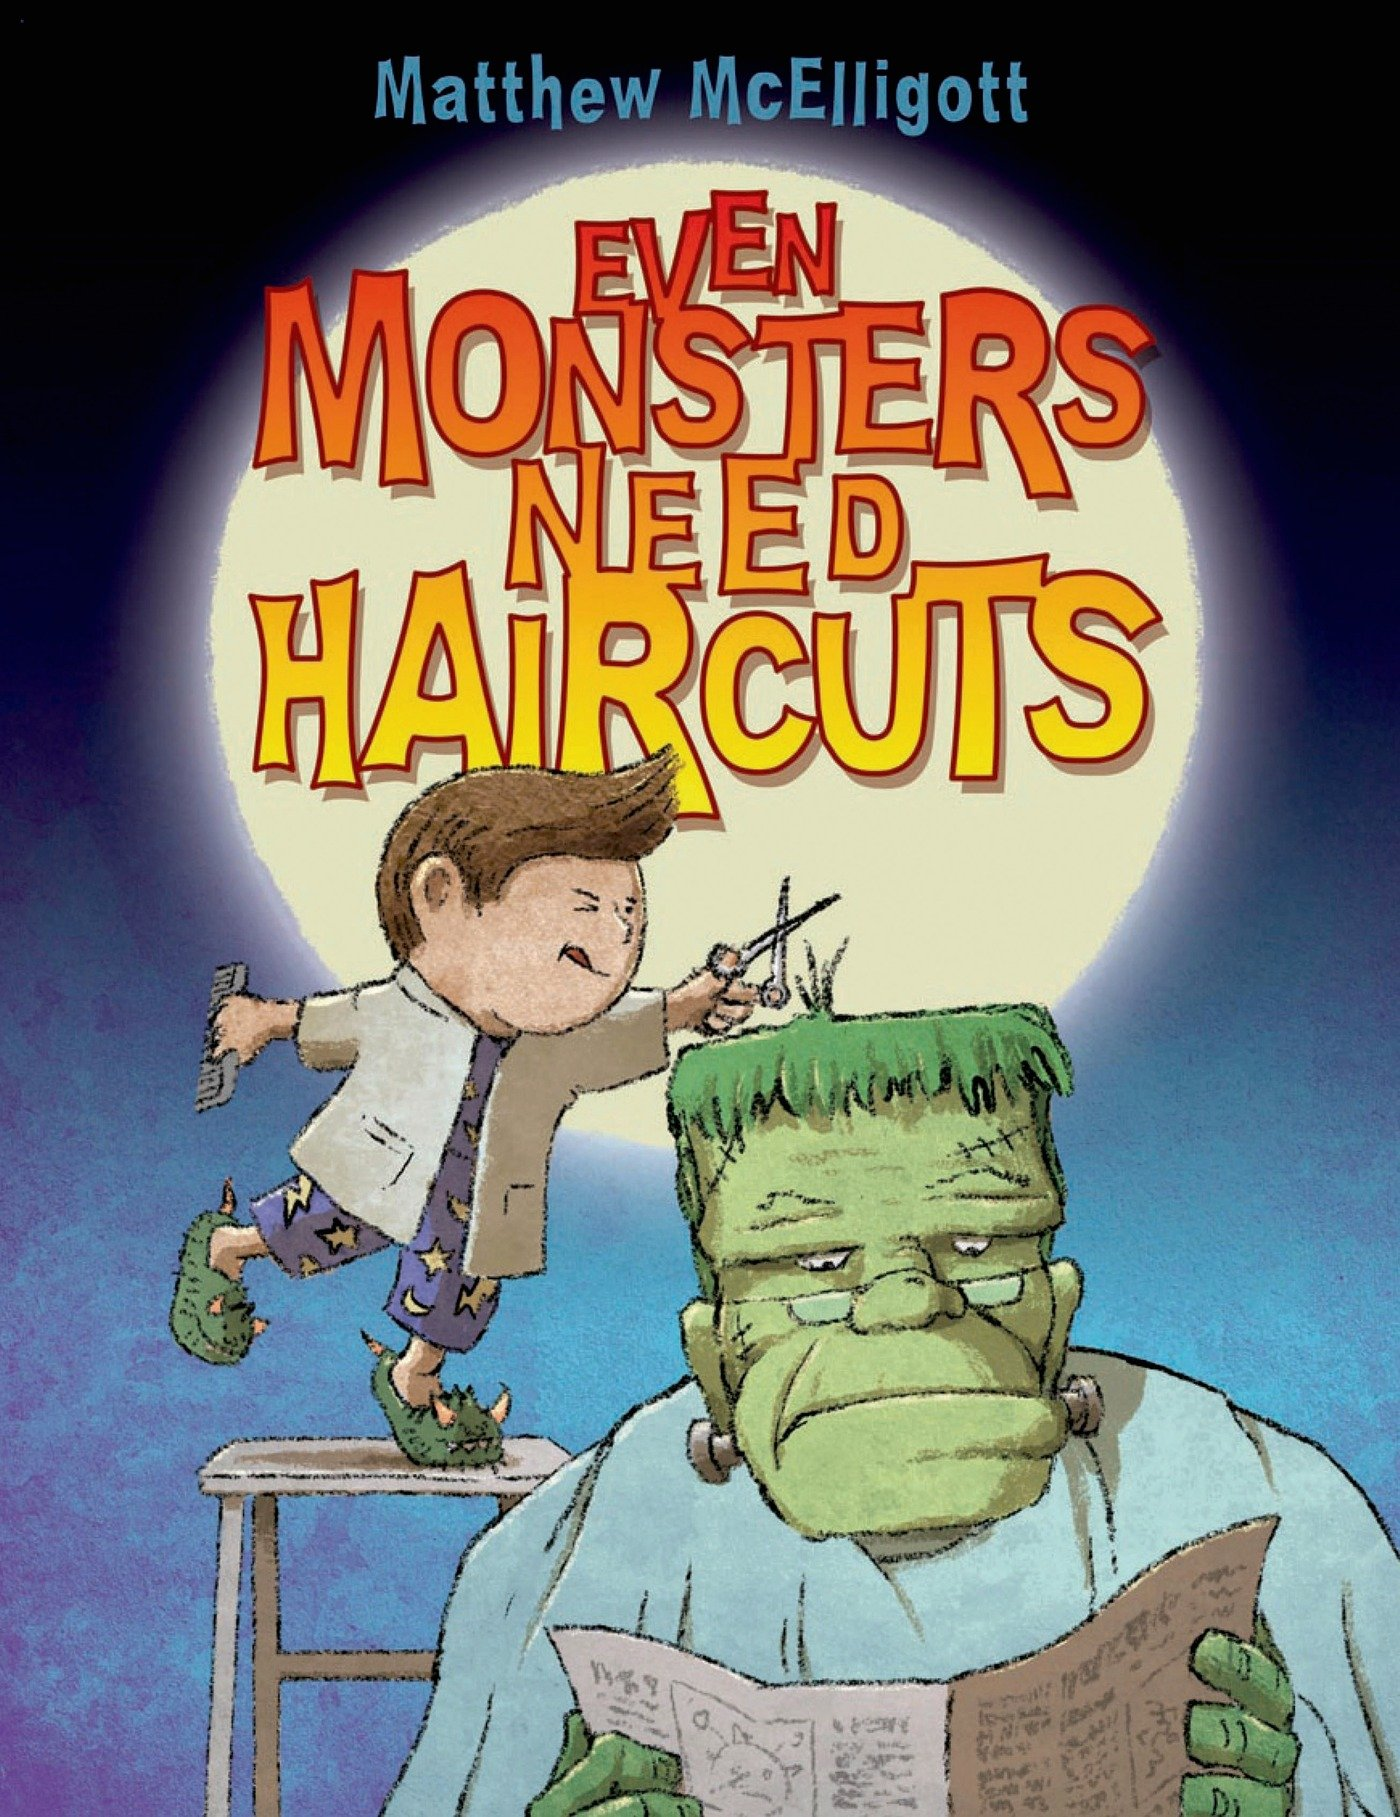 Even Monsters Need Haircuts Matthew Mcelligott 9780802738394